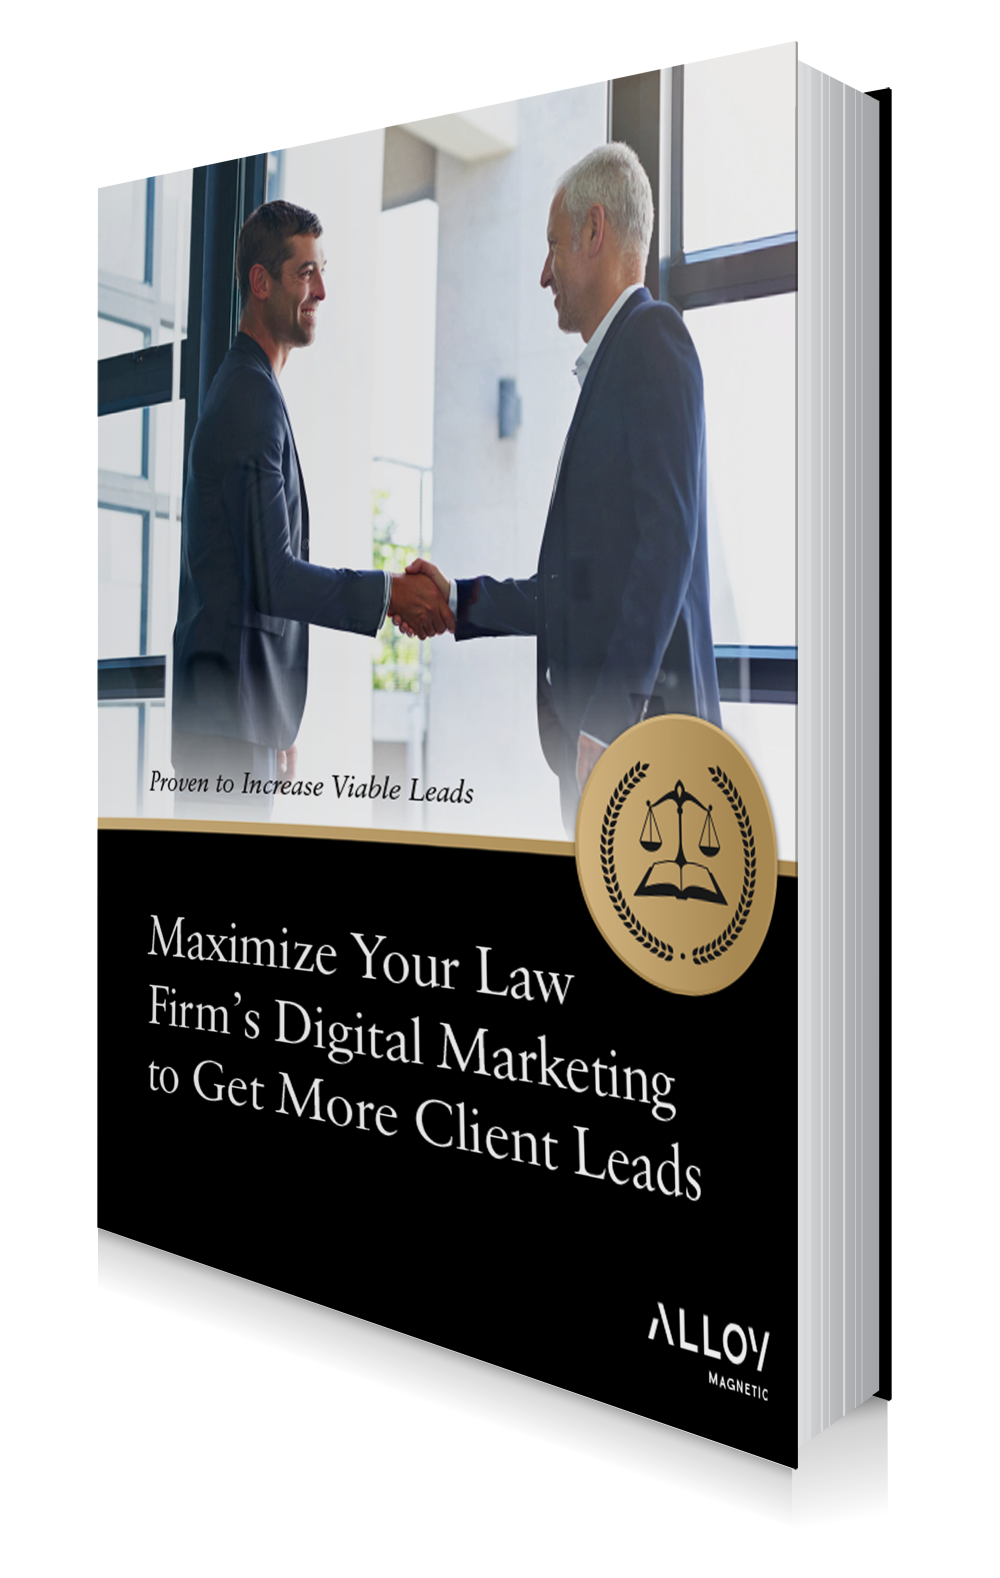 Maximize Your Law Firm's Digital Marketing to Get More Client Leads Graphic.png